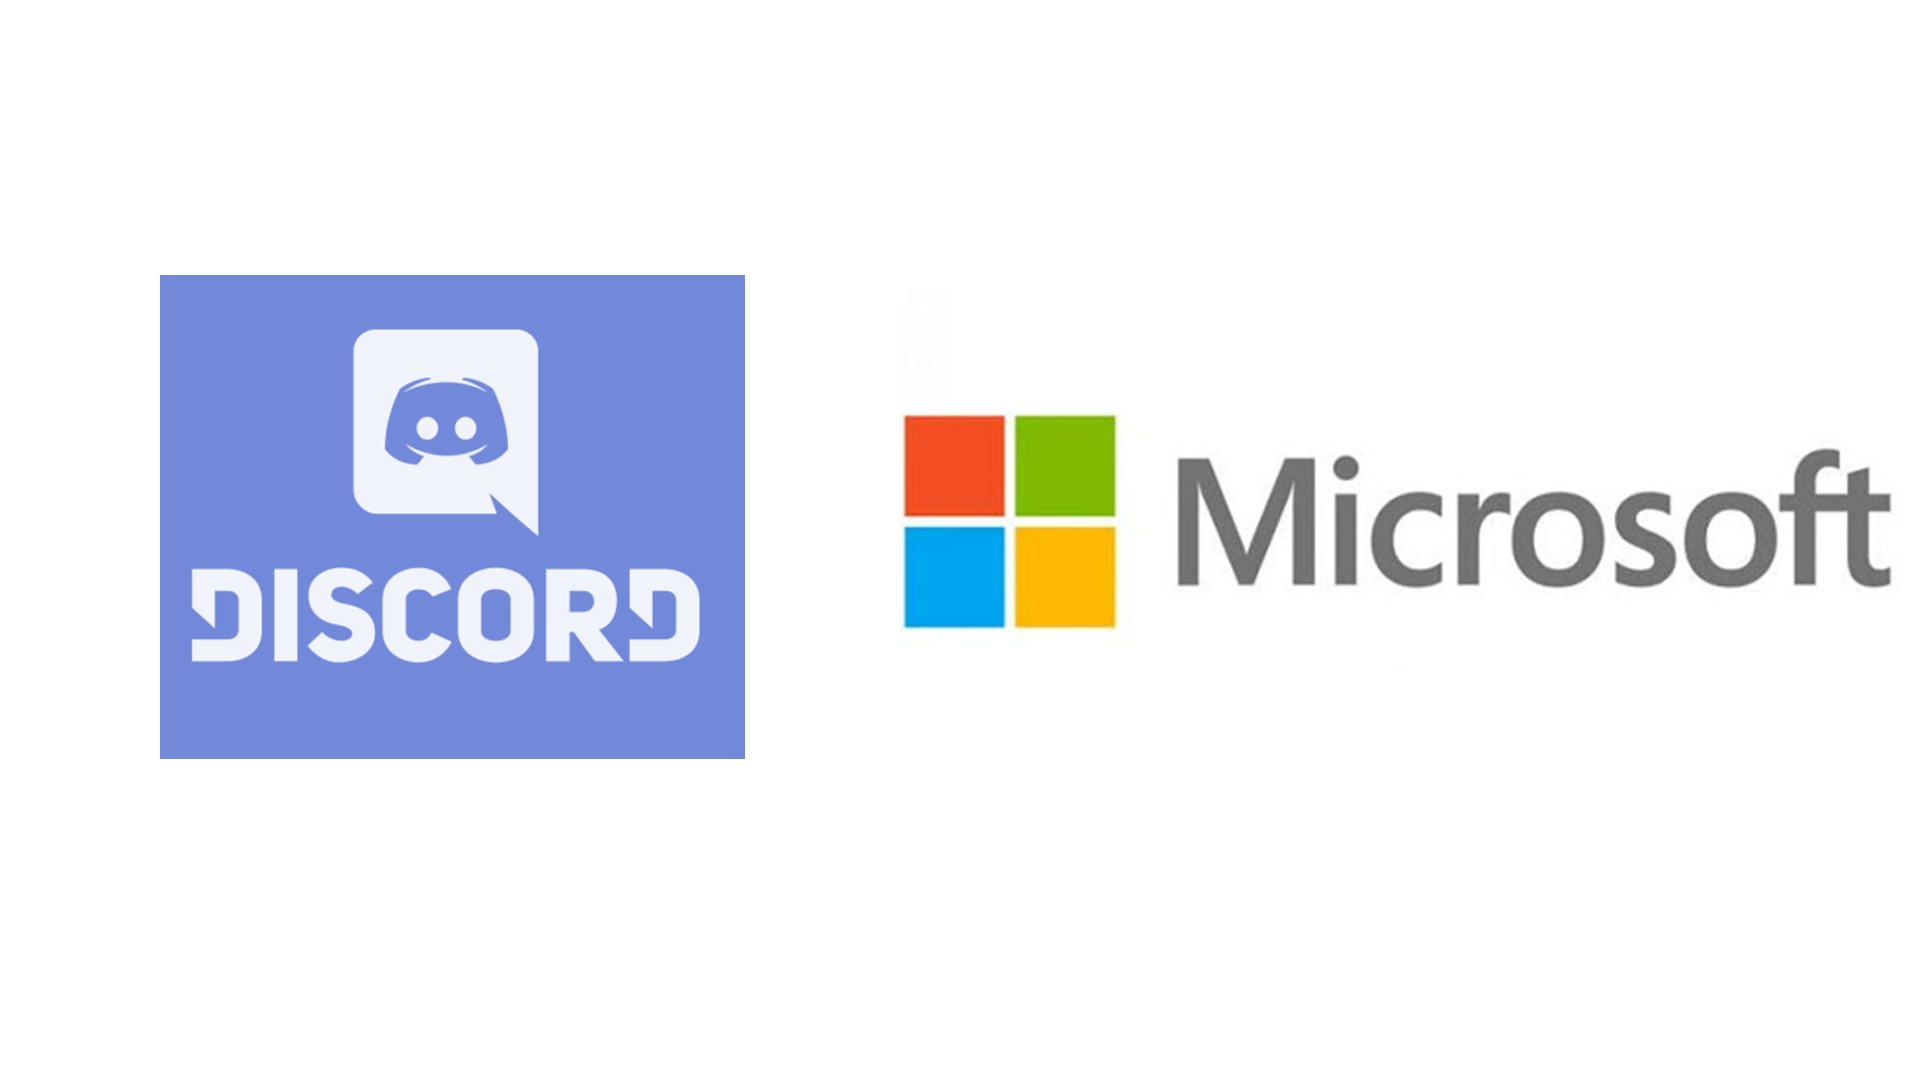 Discord and Microsoft